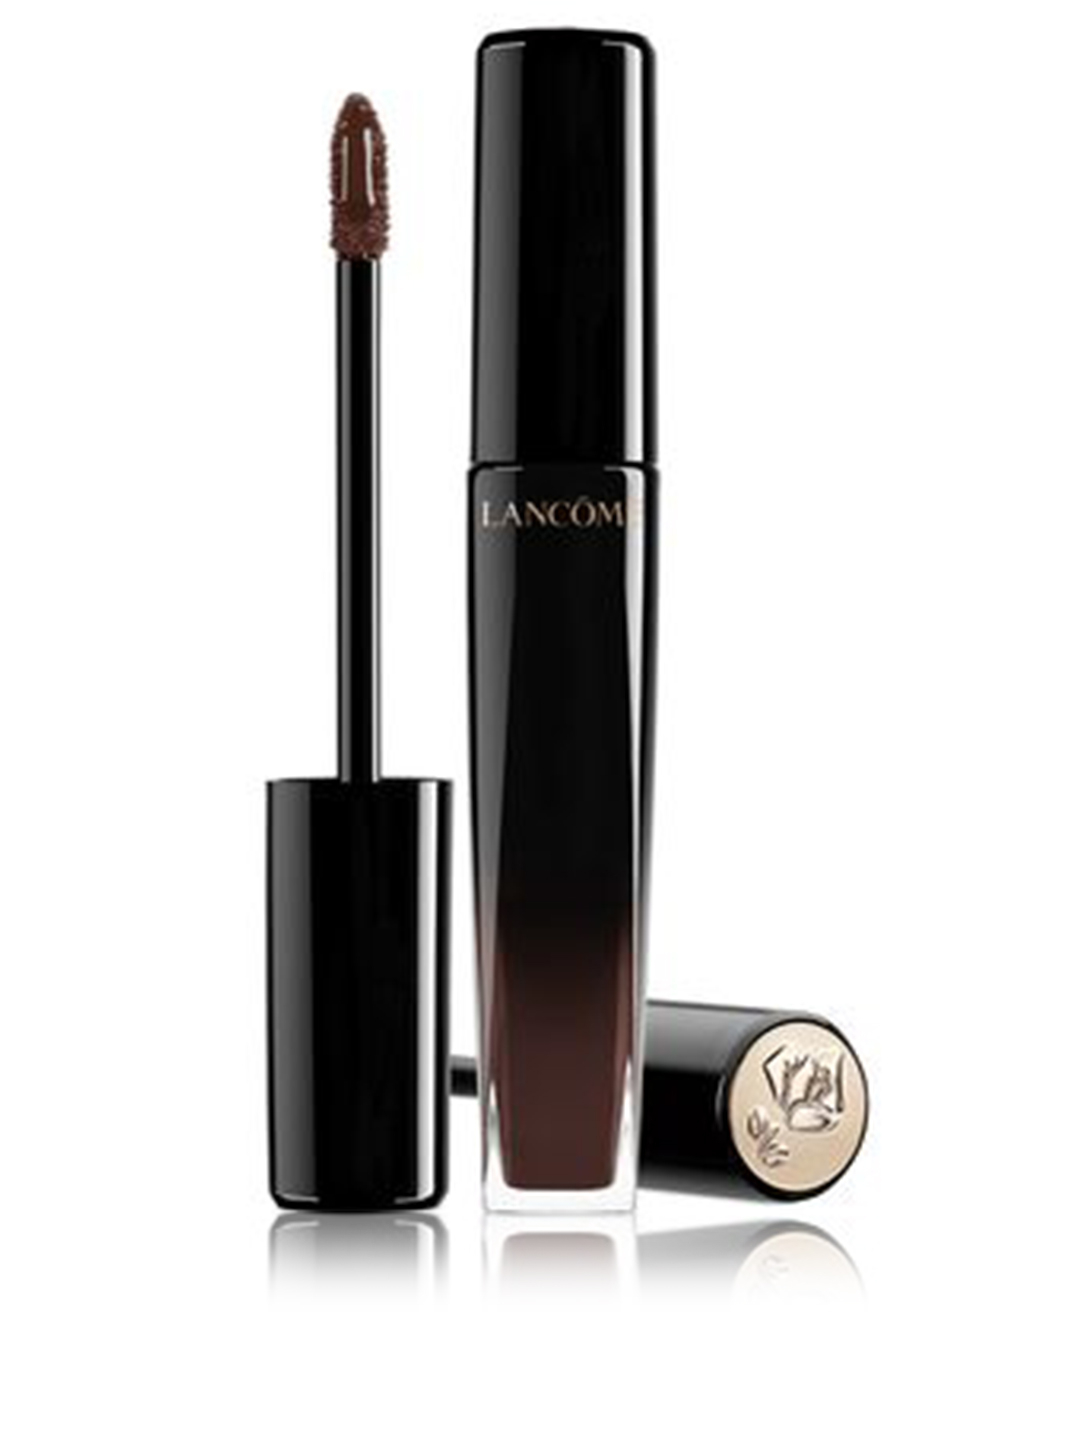 LANCÔME L'Absolu Lacquer Gloss Beauty Brown